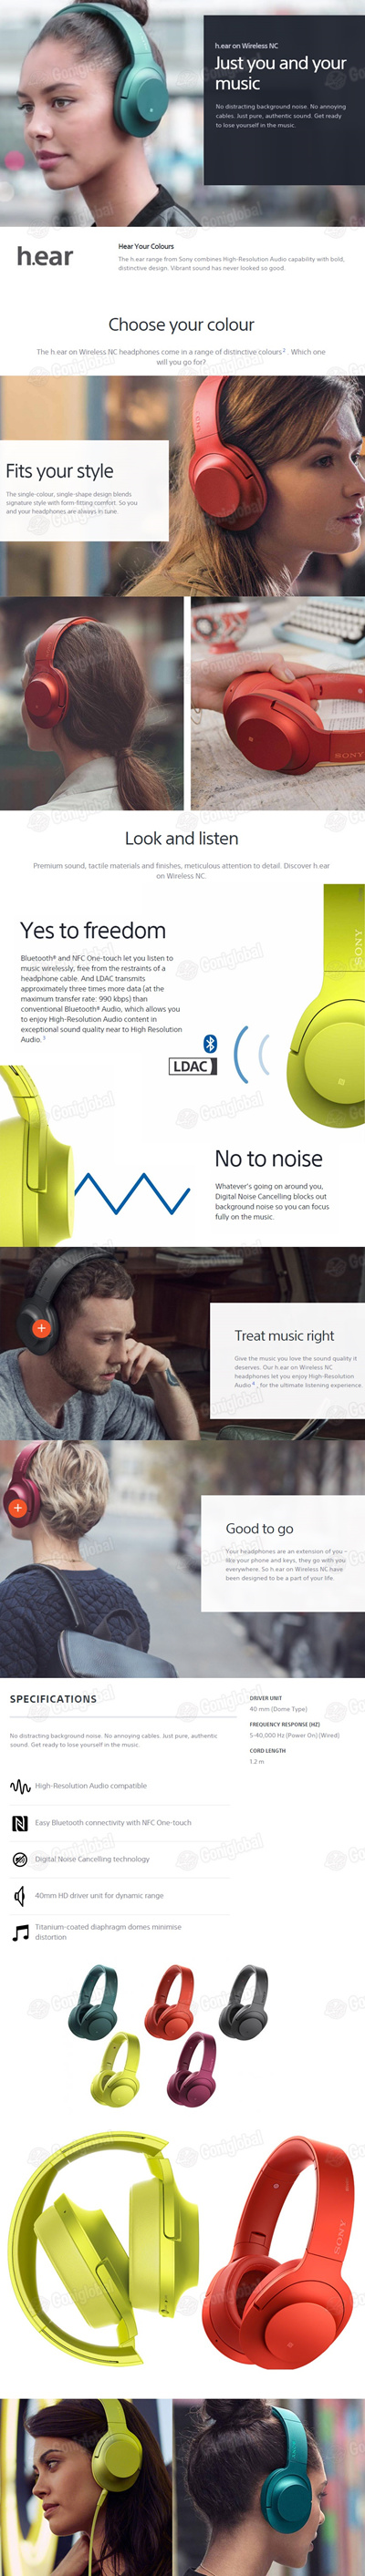 Qoo10 Sony Mdr100 Hear On Wireless Nc Onear Bluetooth Headphones W In Headset Mdr Ex750bt Viridian Blue Nfc Black Search Results Qranking Items Now Sale At